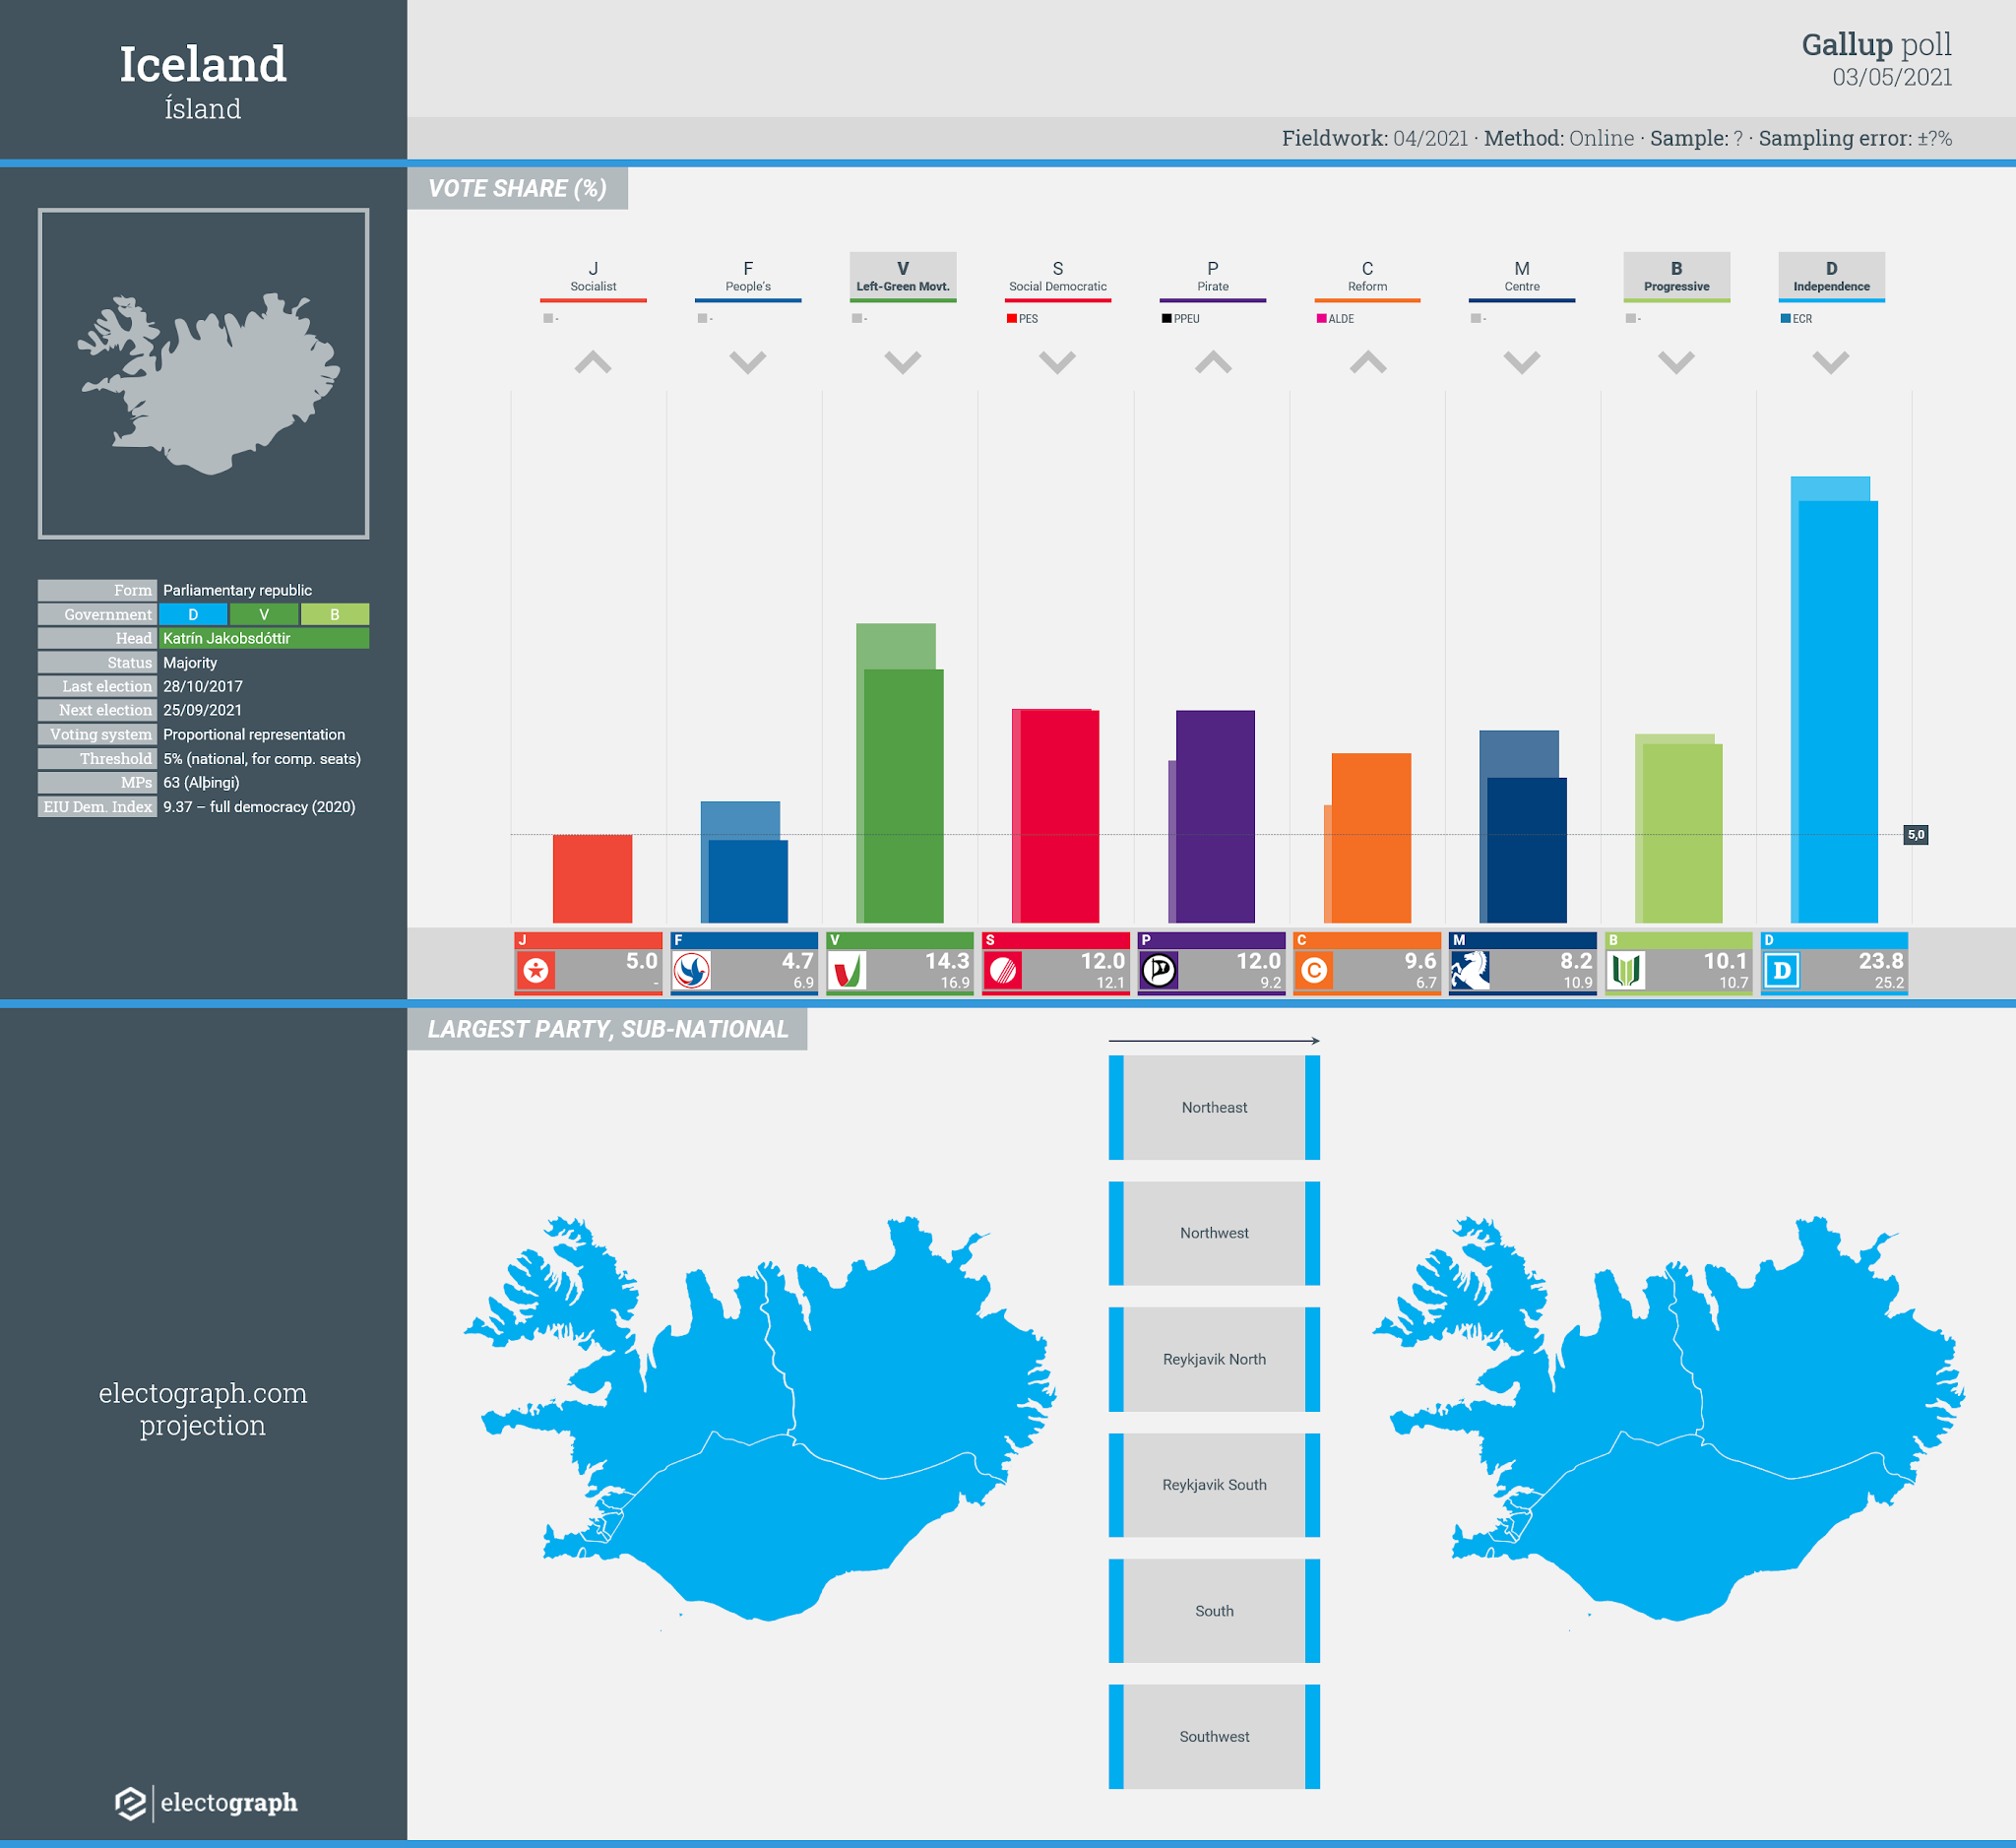 ICELAND: Gallup poll chart, 3 May 2021